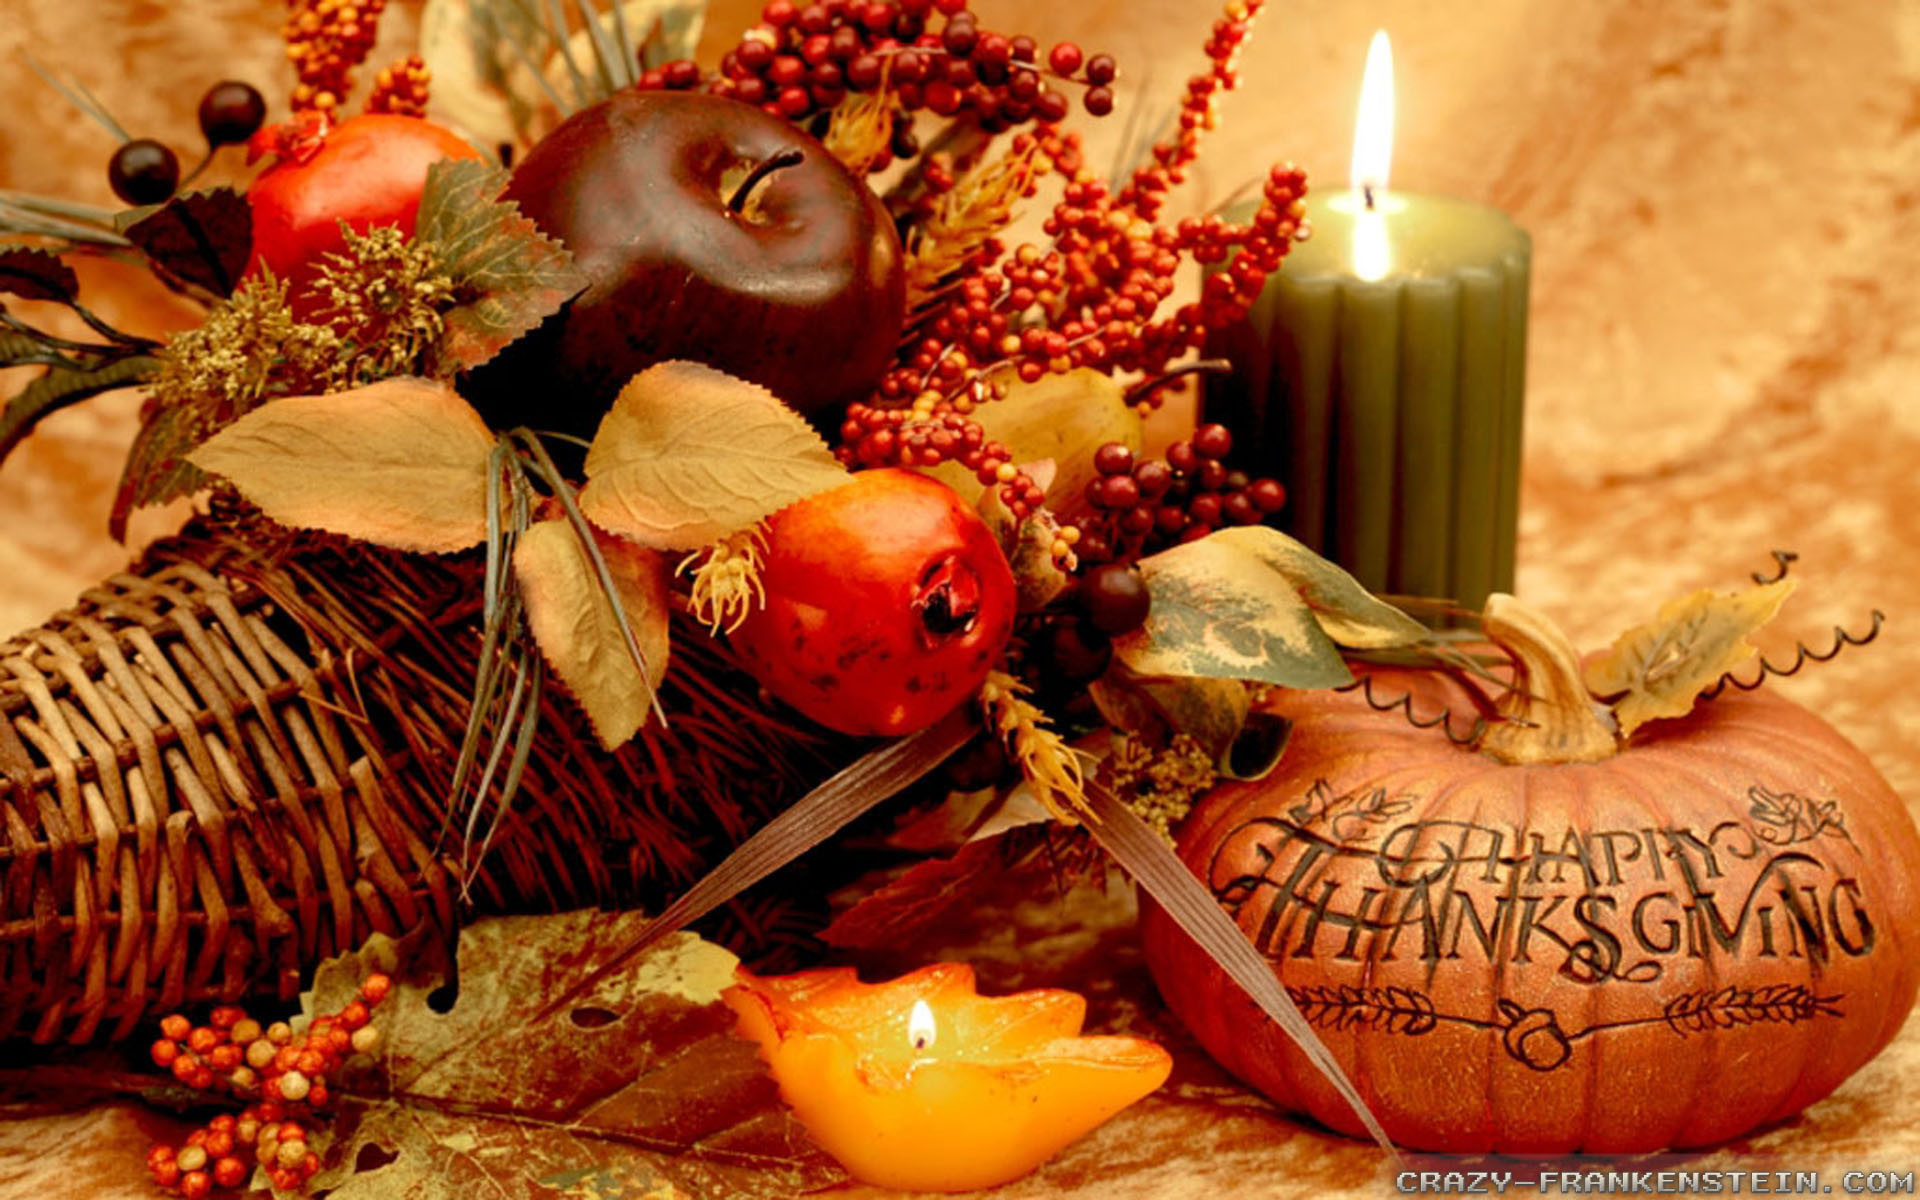 Res: 1920x1200, Wallpaper: Thanksgiving decorations wallpapers. Resolution: 1024x768 |  1280x1024 | 1600x1200. Widescreen Res: 1440x900 | 1680x1050 |